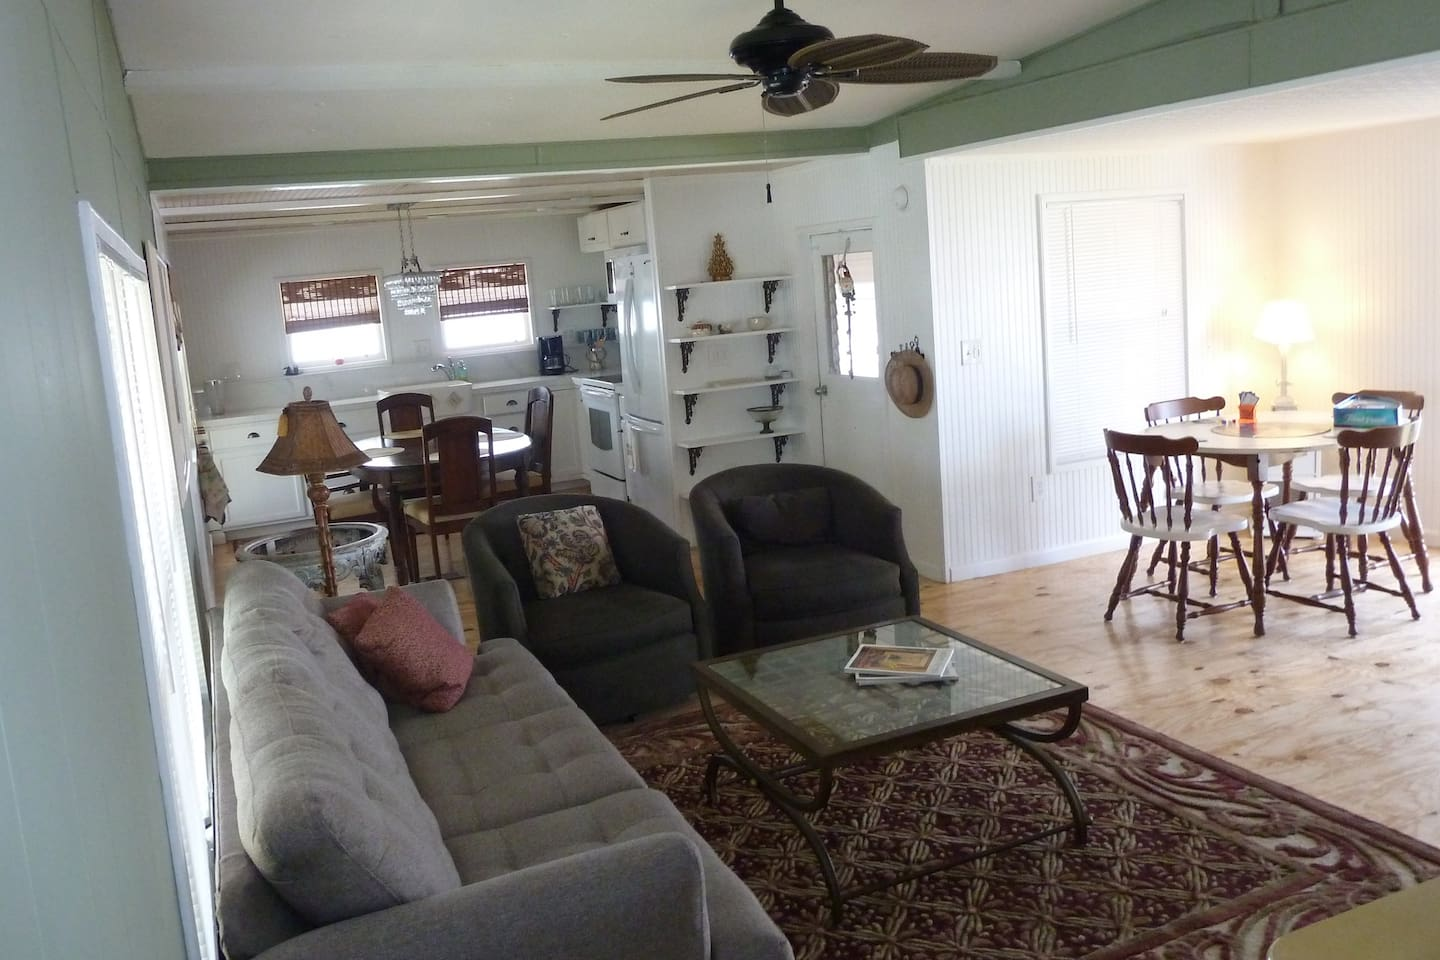 Palm Lake Cottage - 55 and Older  Three month Stay Minimum.  Lakeside Cottage furnished with everything you need to enjoy the Palm Beaches. Located minutes from beaches, golf, baseball, fishing ... entertainment.  Minutes from I95 and Turnpike.